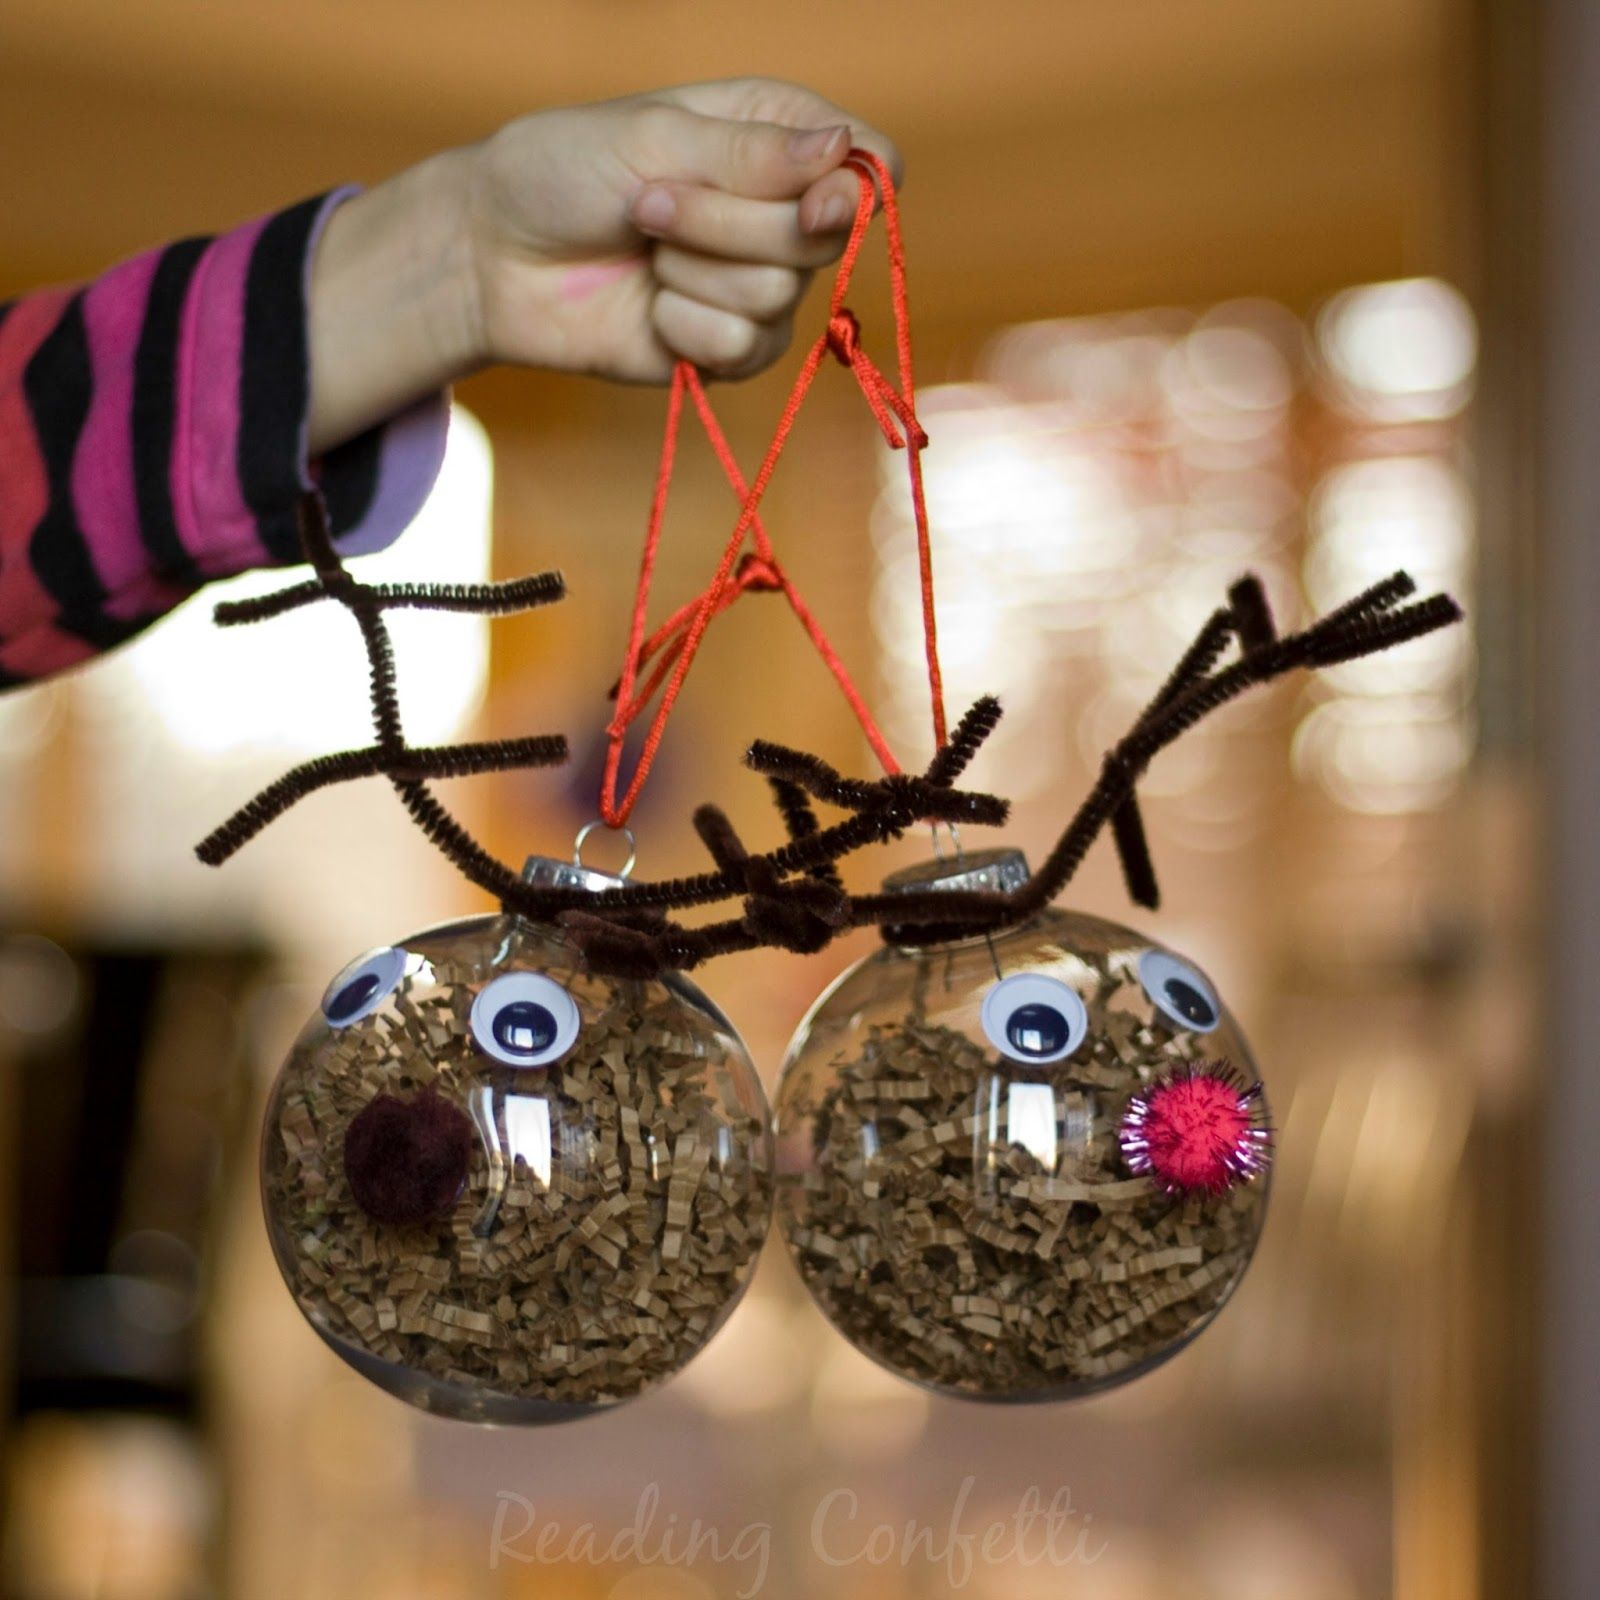 S mores ornaments - Easy To Make Reindeer Ornaments